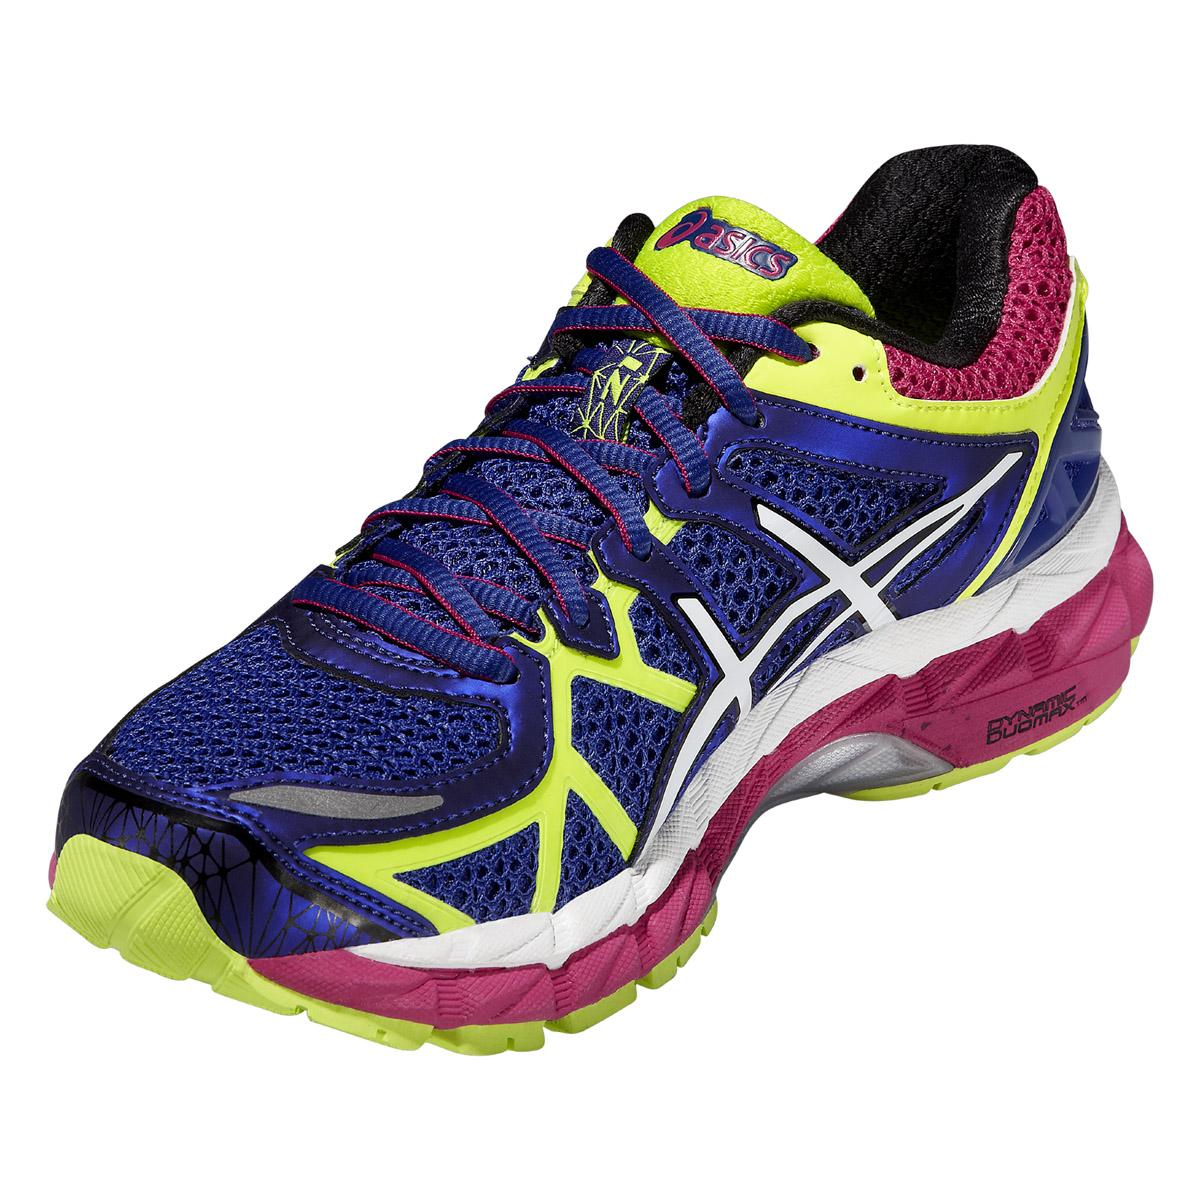 asics womens gel kayano 21 running shoes blue flash yellow. Black Bedroom Furniture Sets. Home Design Ideas